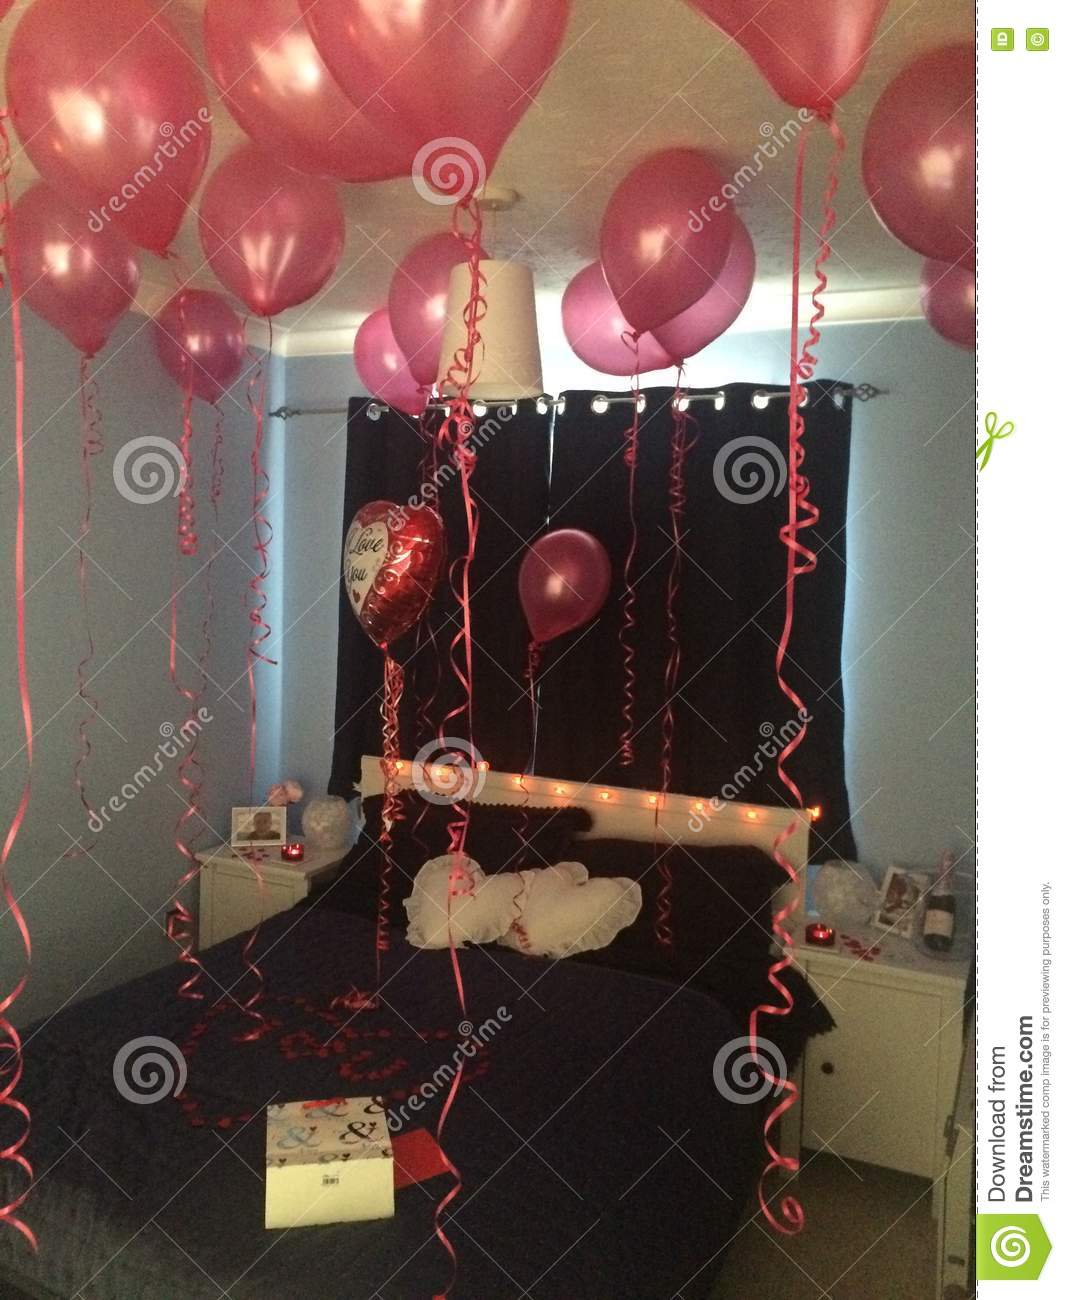 Valentine's Day Bedroom Decorated With Red Helium Balloons